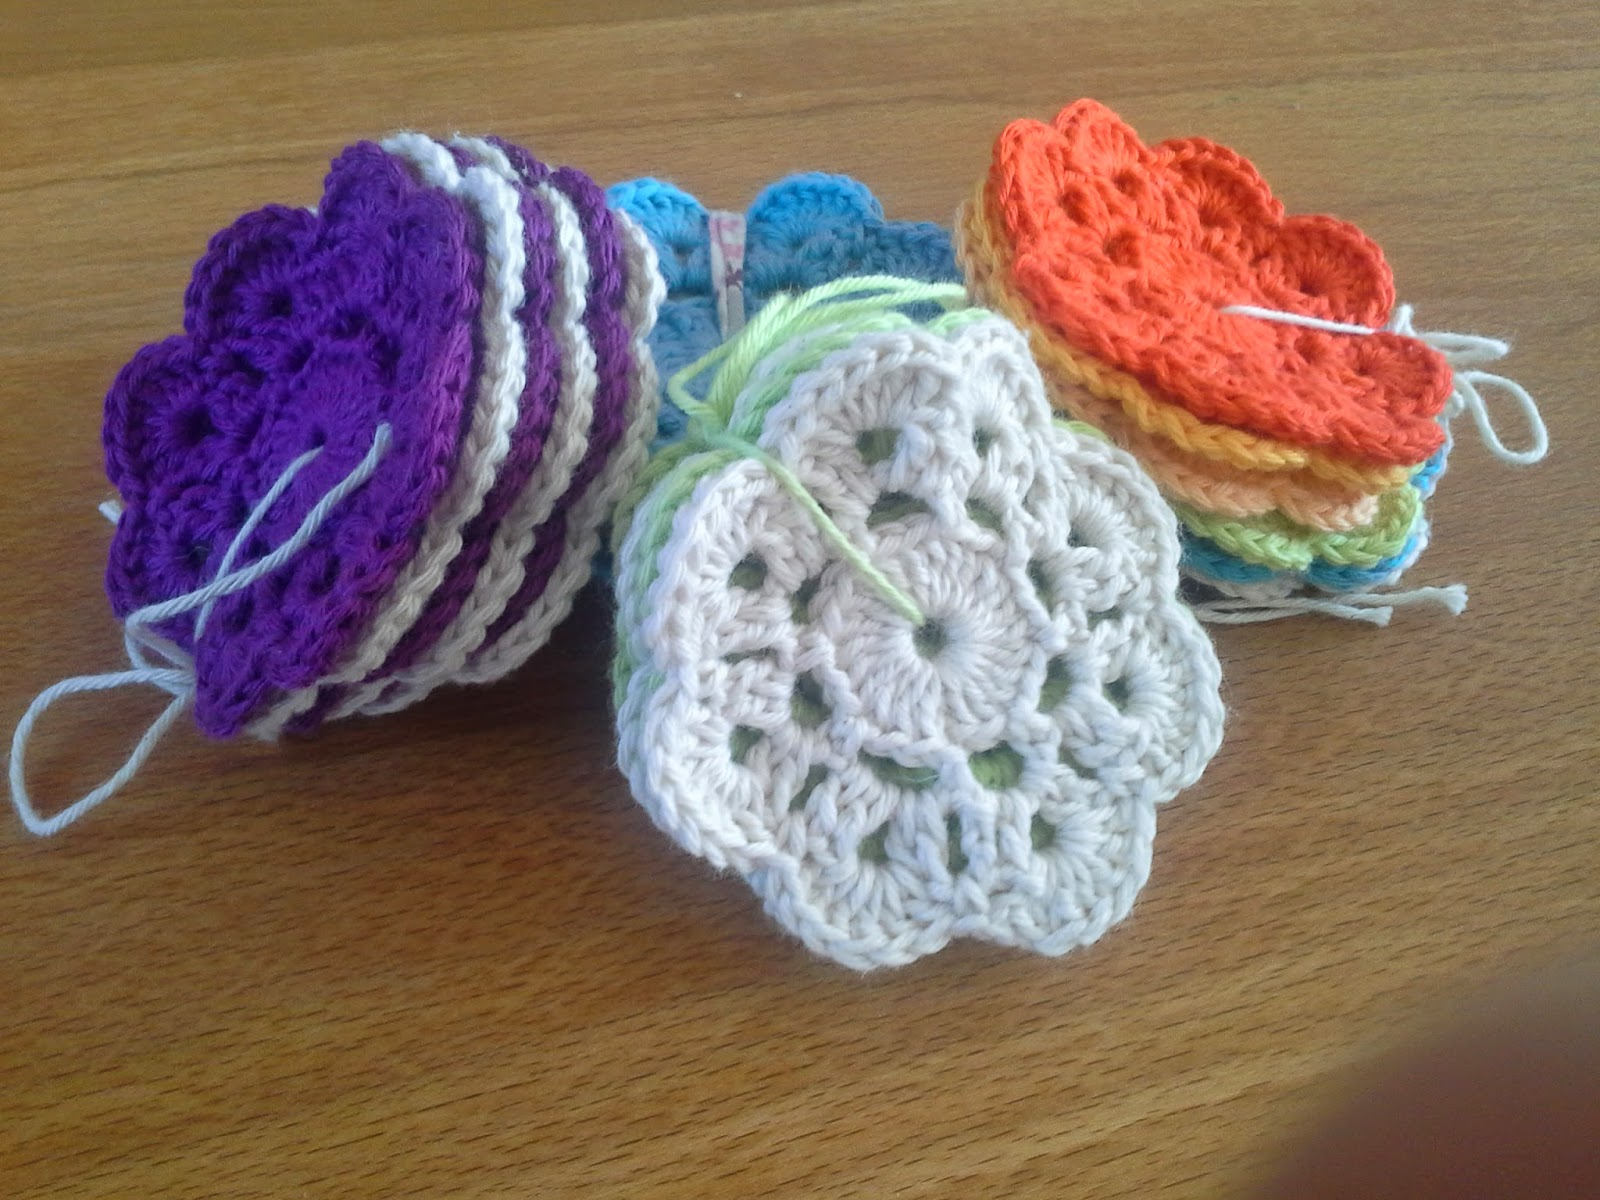 Crochet between worlds maybelle flowers sunday 20 april 2014 bankloansurffo Images